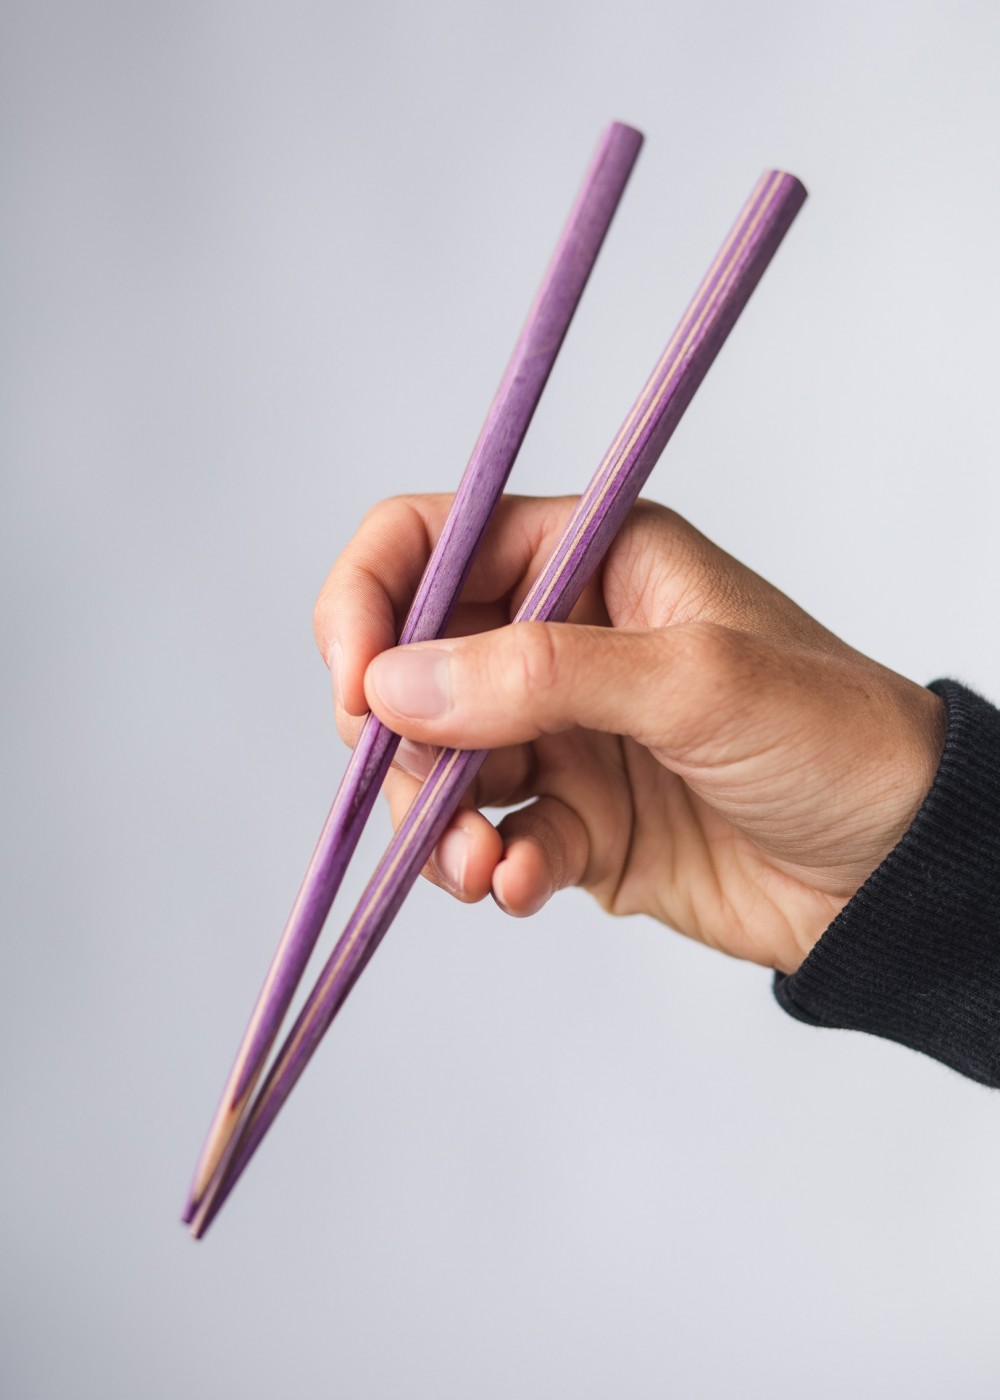 PURPLE CHOPSTICK